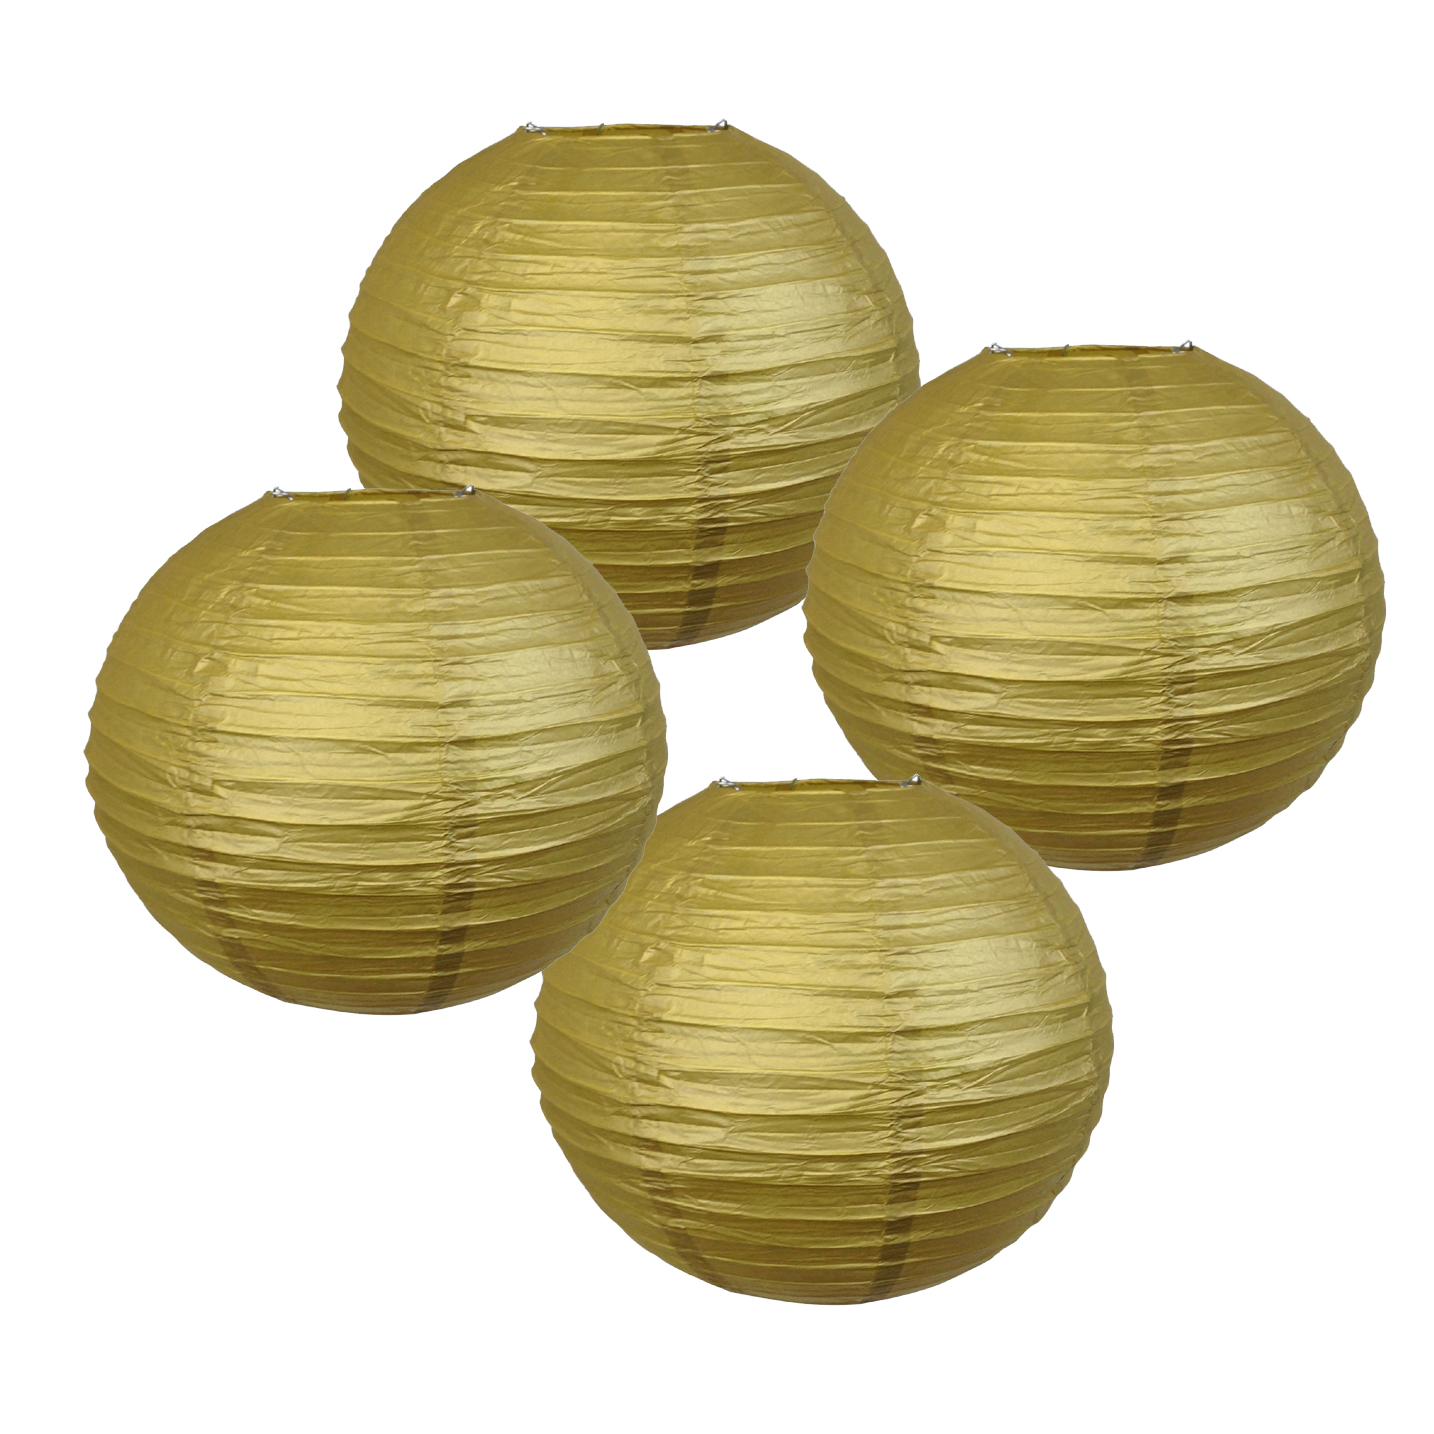 """14"""" Gold Chinese Japanese Paper Lanterns (Set of 4) - Decorative Round Chinese/Japanese Paper Lanterns for Birthday Parties, Weddings, Baby Showers, and Life Celebrations!"""